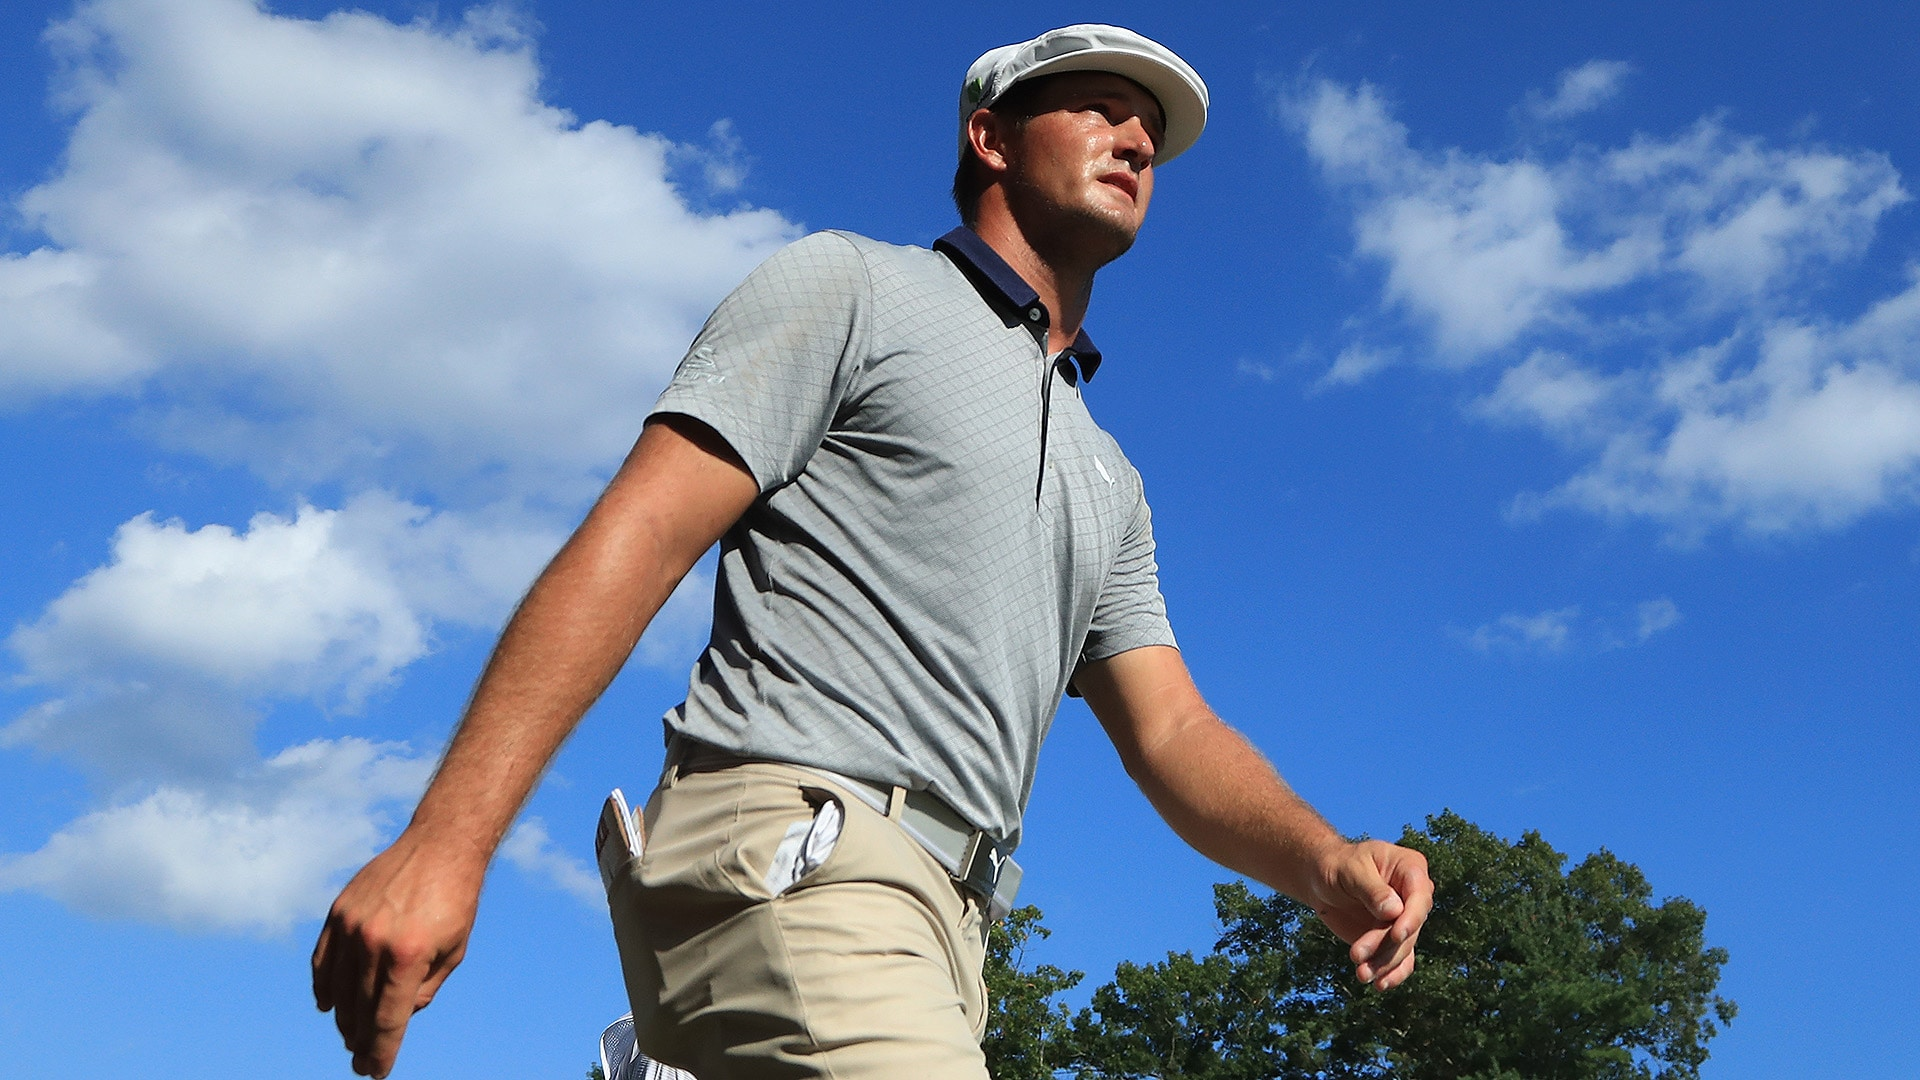 bryson dechambeau planning muscle activation tests in